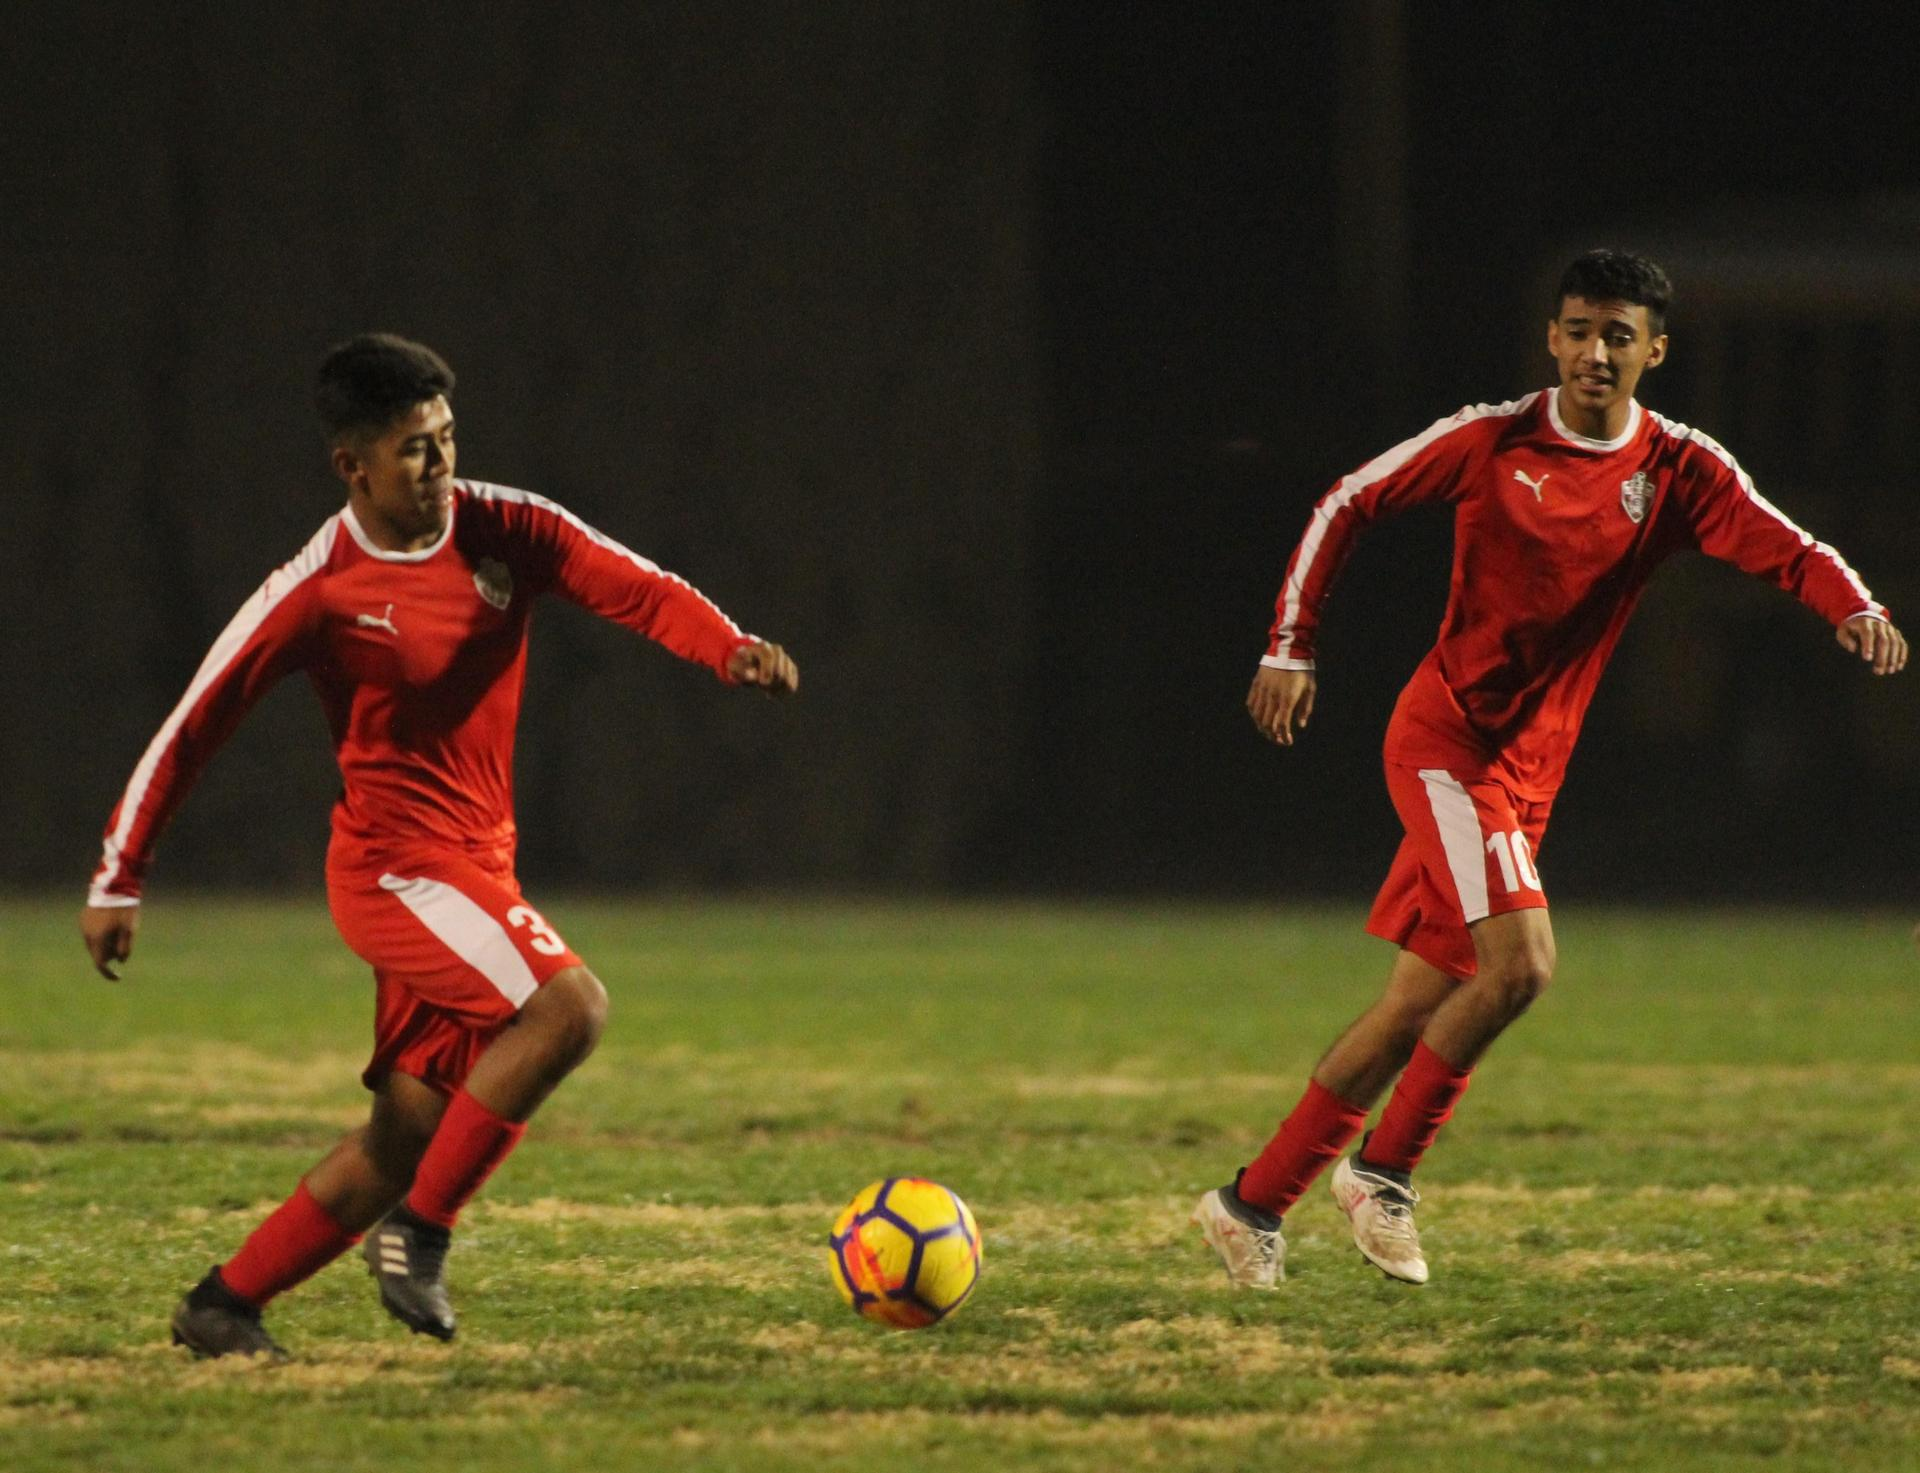 Alejandro Montes and Jacob Corchado Running with the Ball